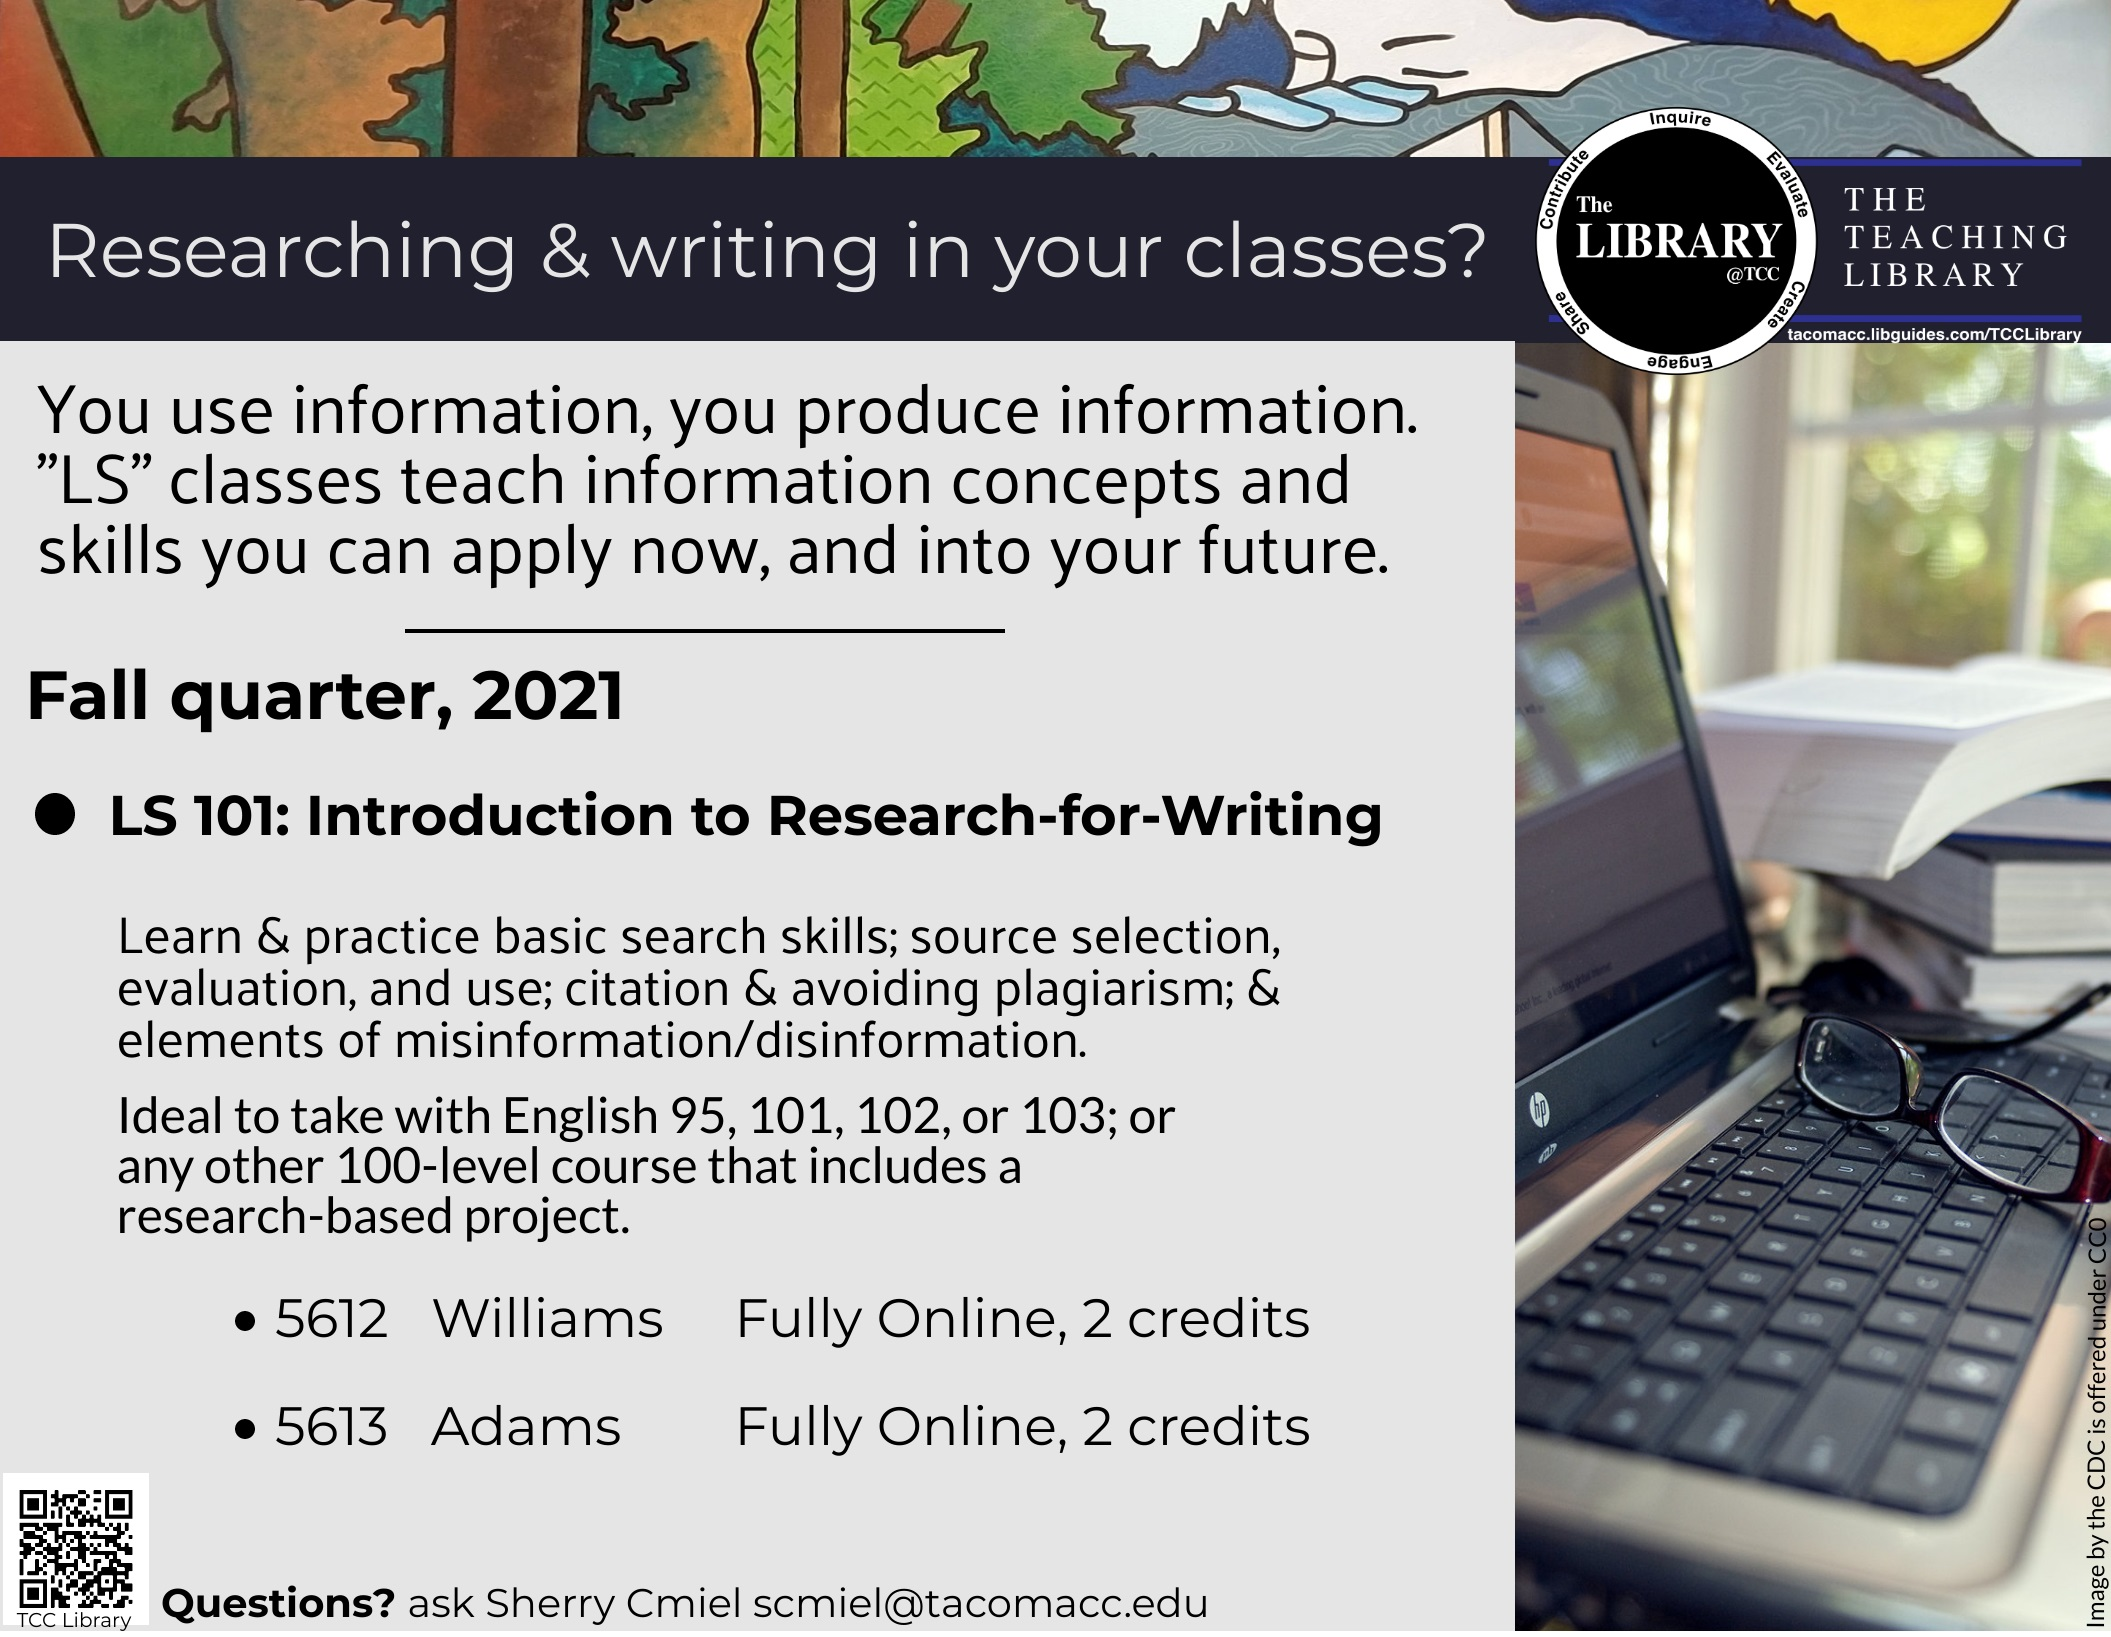 Course flier, fall 2021: Researching and writing in your classes? You use information, you produce information. LS 101 teaches information concepts and skills you can apply now, and into your future. LS 101 Introduction to research-for-writing: Learn and practice basic search skills, source selection, evaluation and use; citation and avoiding plagiarism; and elements of misinformation/disinformation. Ideal to take with English 95, 101, 102, 103 or any other 100-level course that includes a research-based project. There are two fully online sections this quarter. LS 101 is a 2-credit, college-level course. Sign up for either section 5612 taught by Professor Williams, or section 5613 taught by Professor Adams.